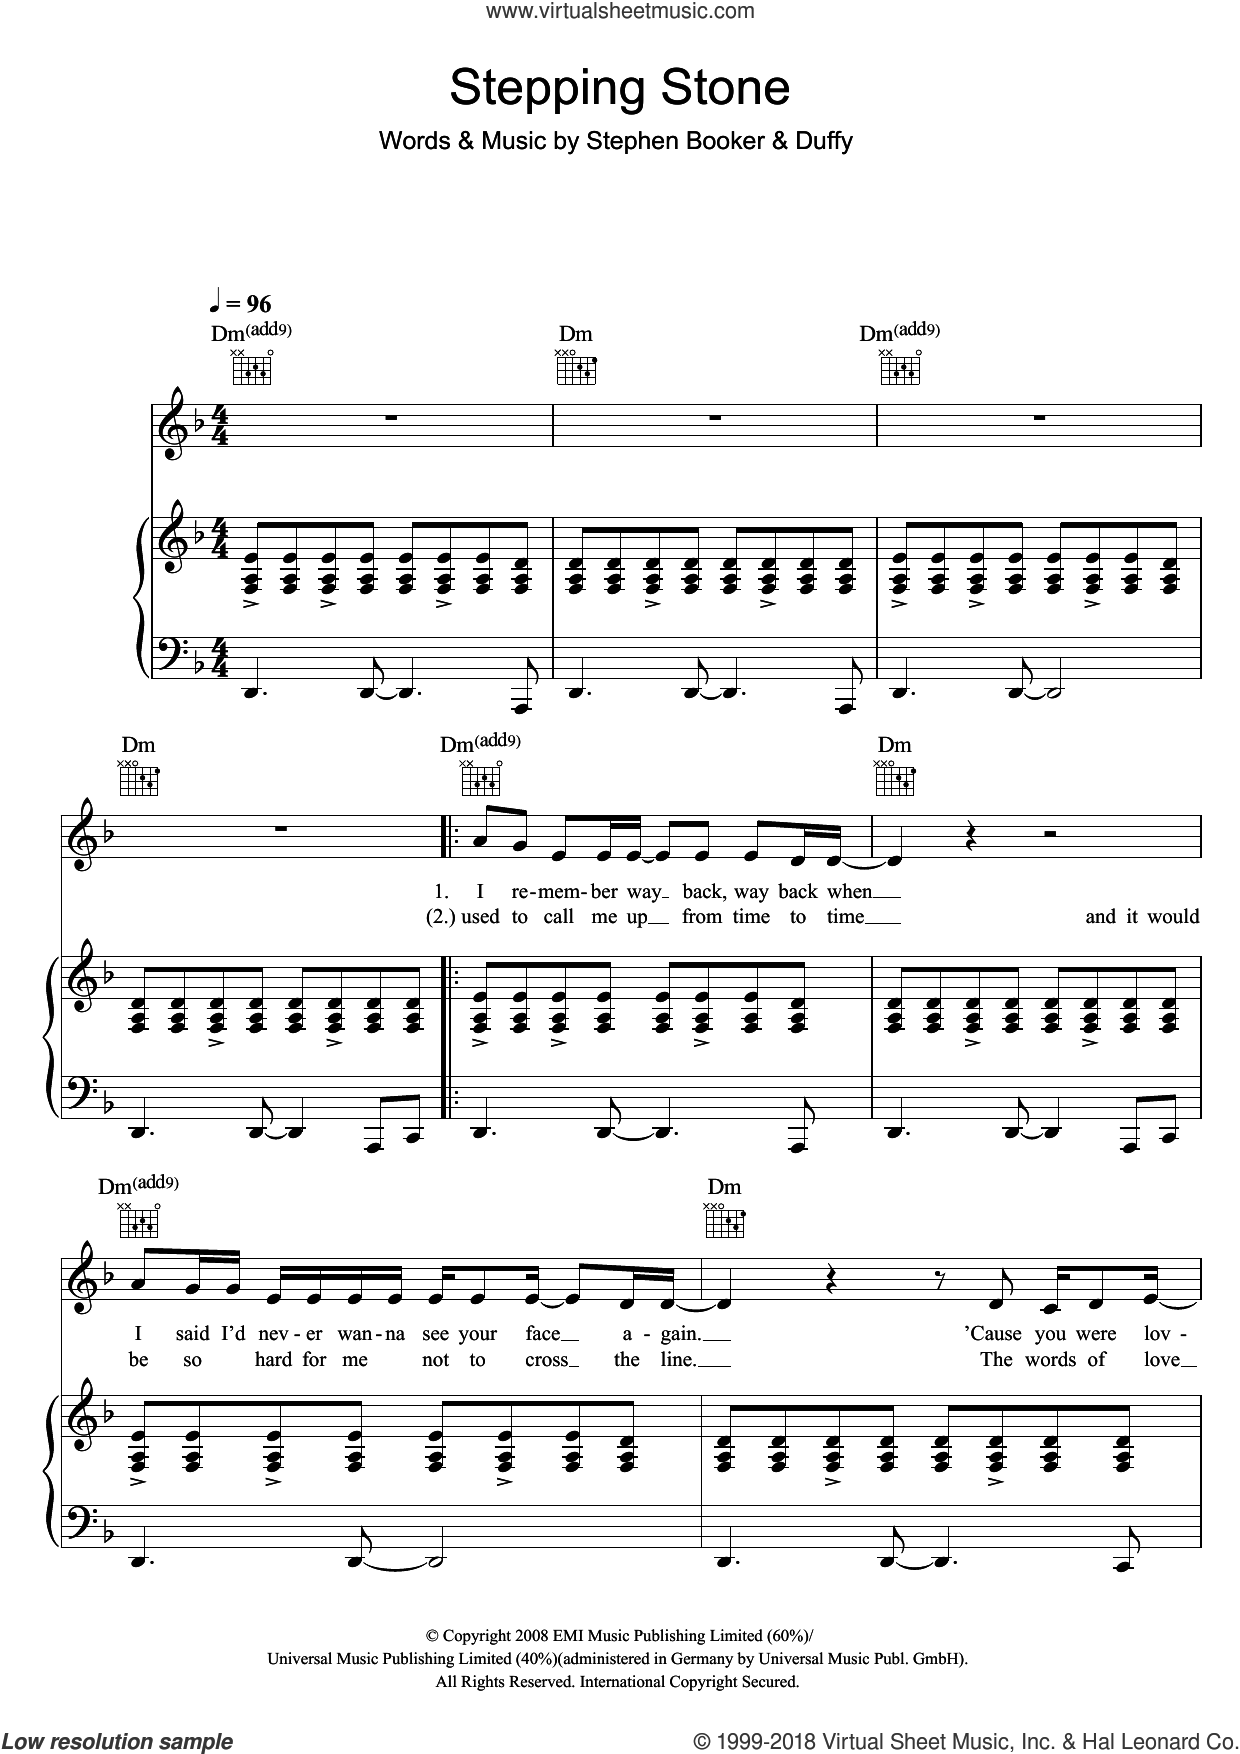 Stepping Stone sheet music for voice, piano or guitar by Duffy and Steve Booker, intermediate